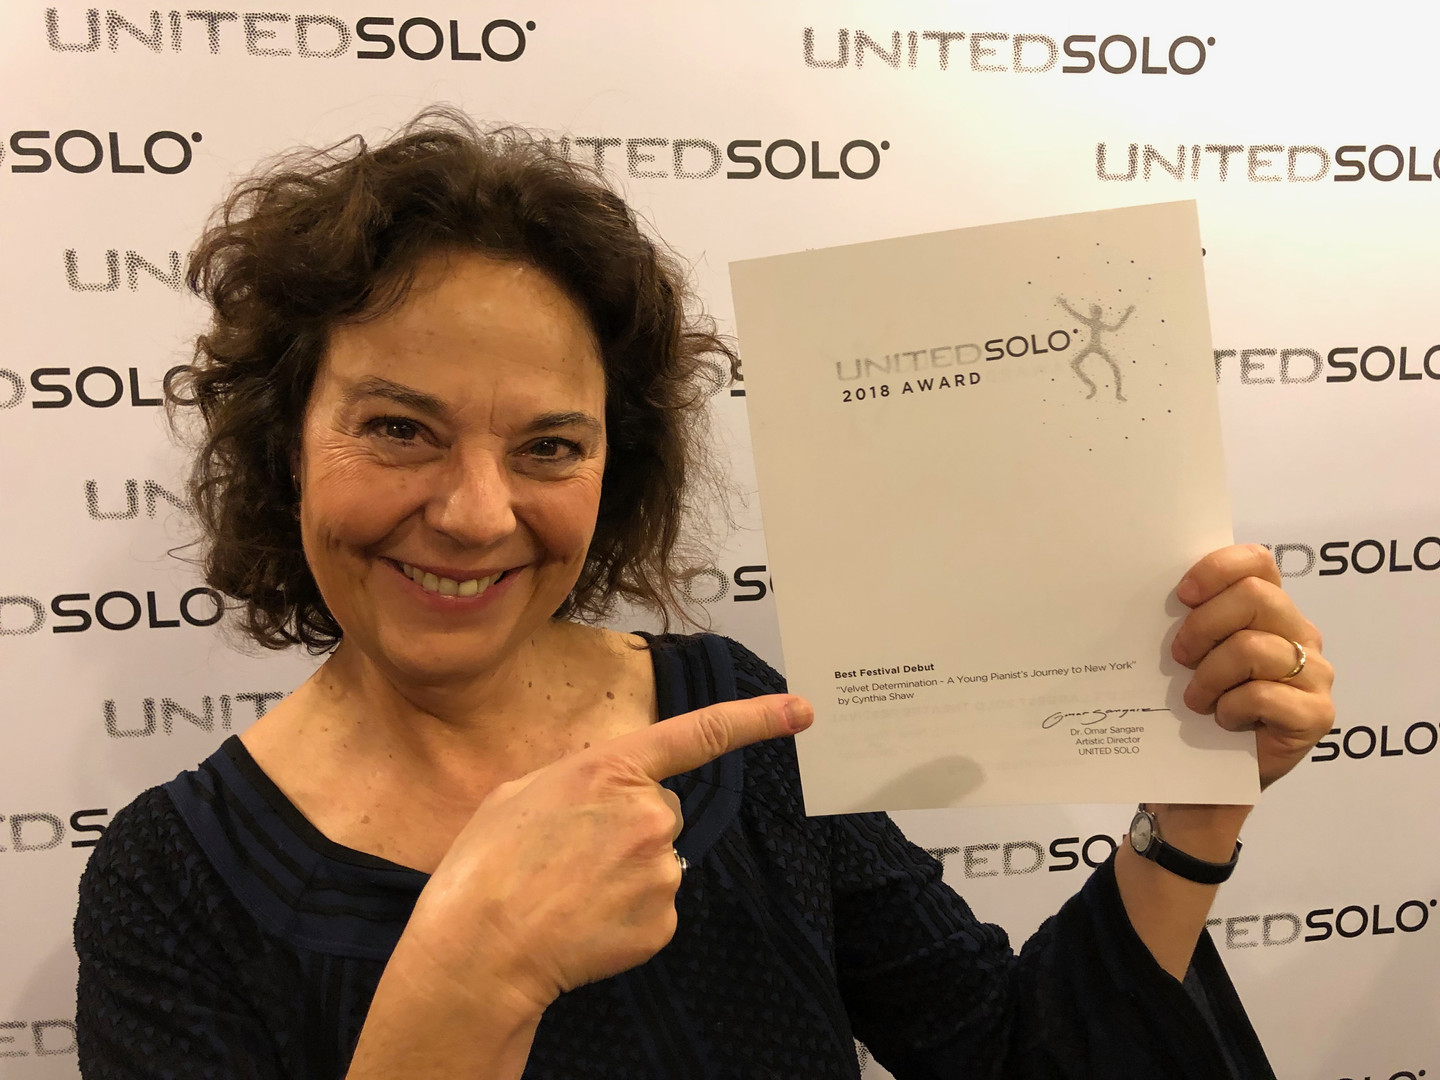 United Solo, 2018 (Best Festival Debut)